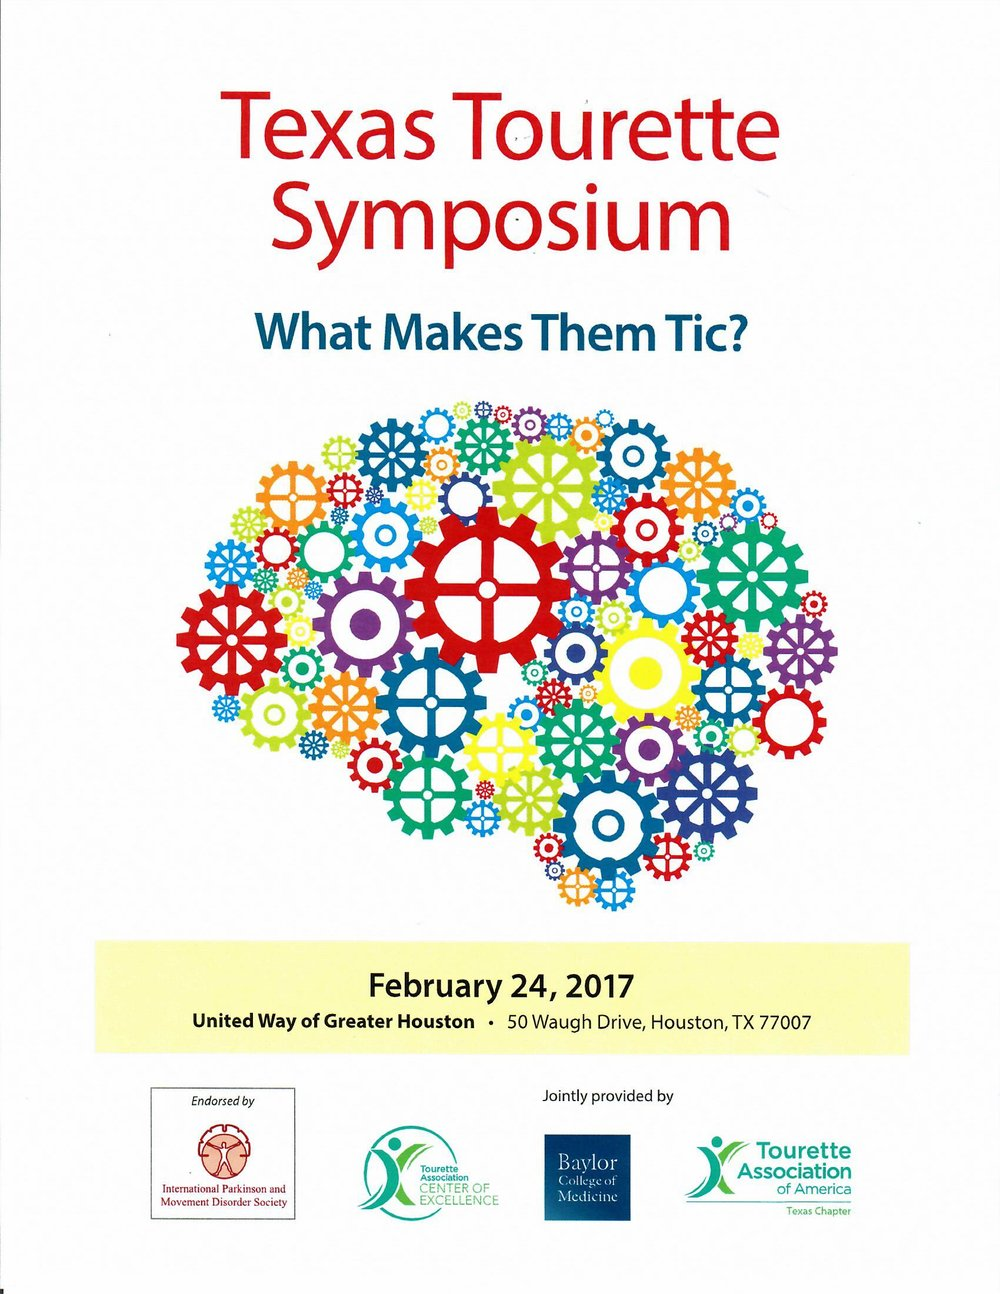 VIEW BROCHURE HERE:  http://www.baylorcme.org/pdfs/1530%20-%20Tourette%202017_Brochure_Final%20V2.pdf